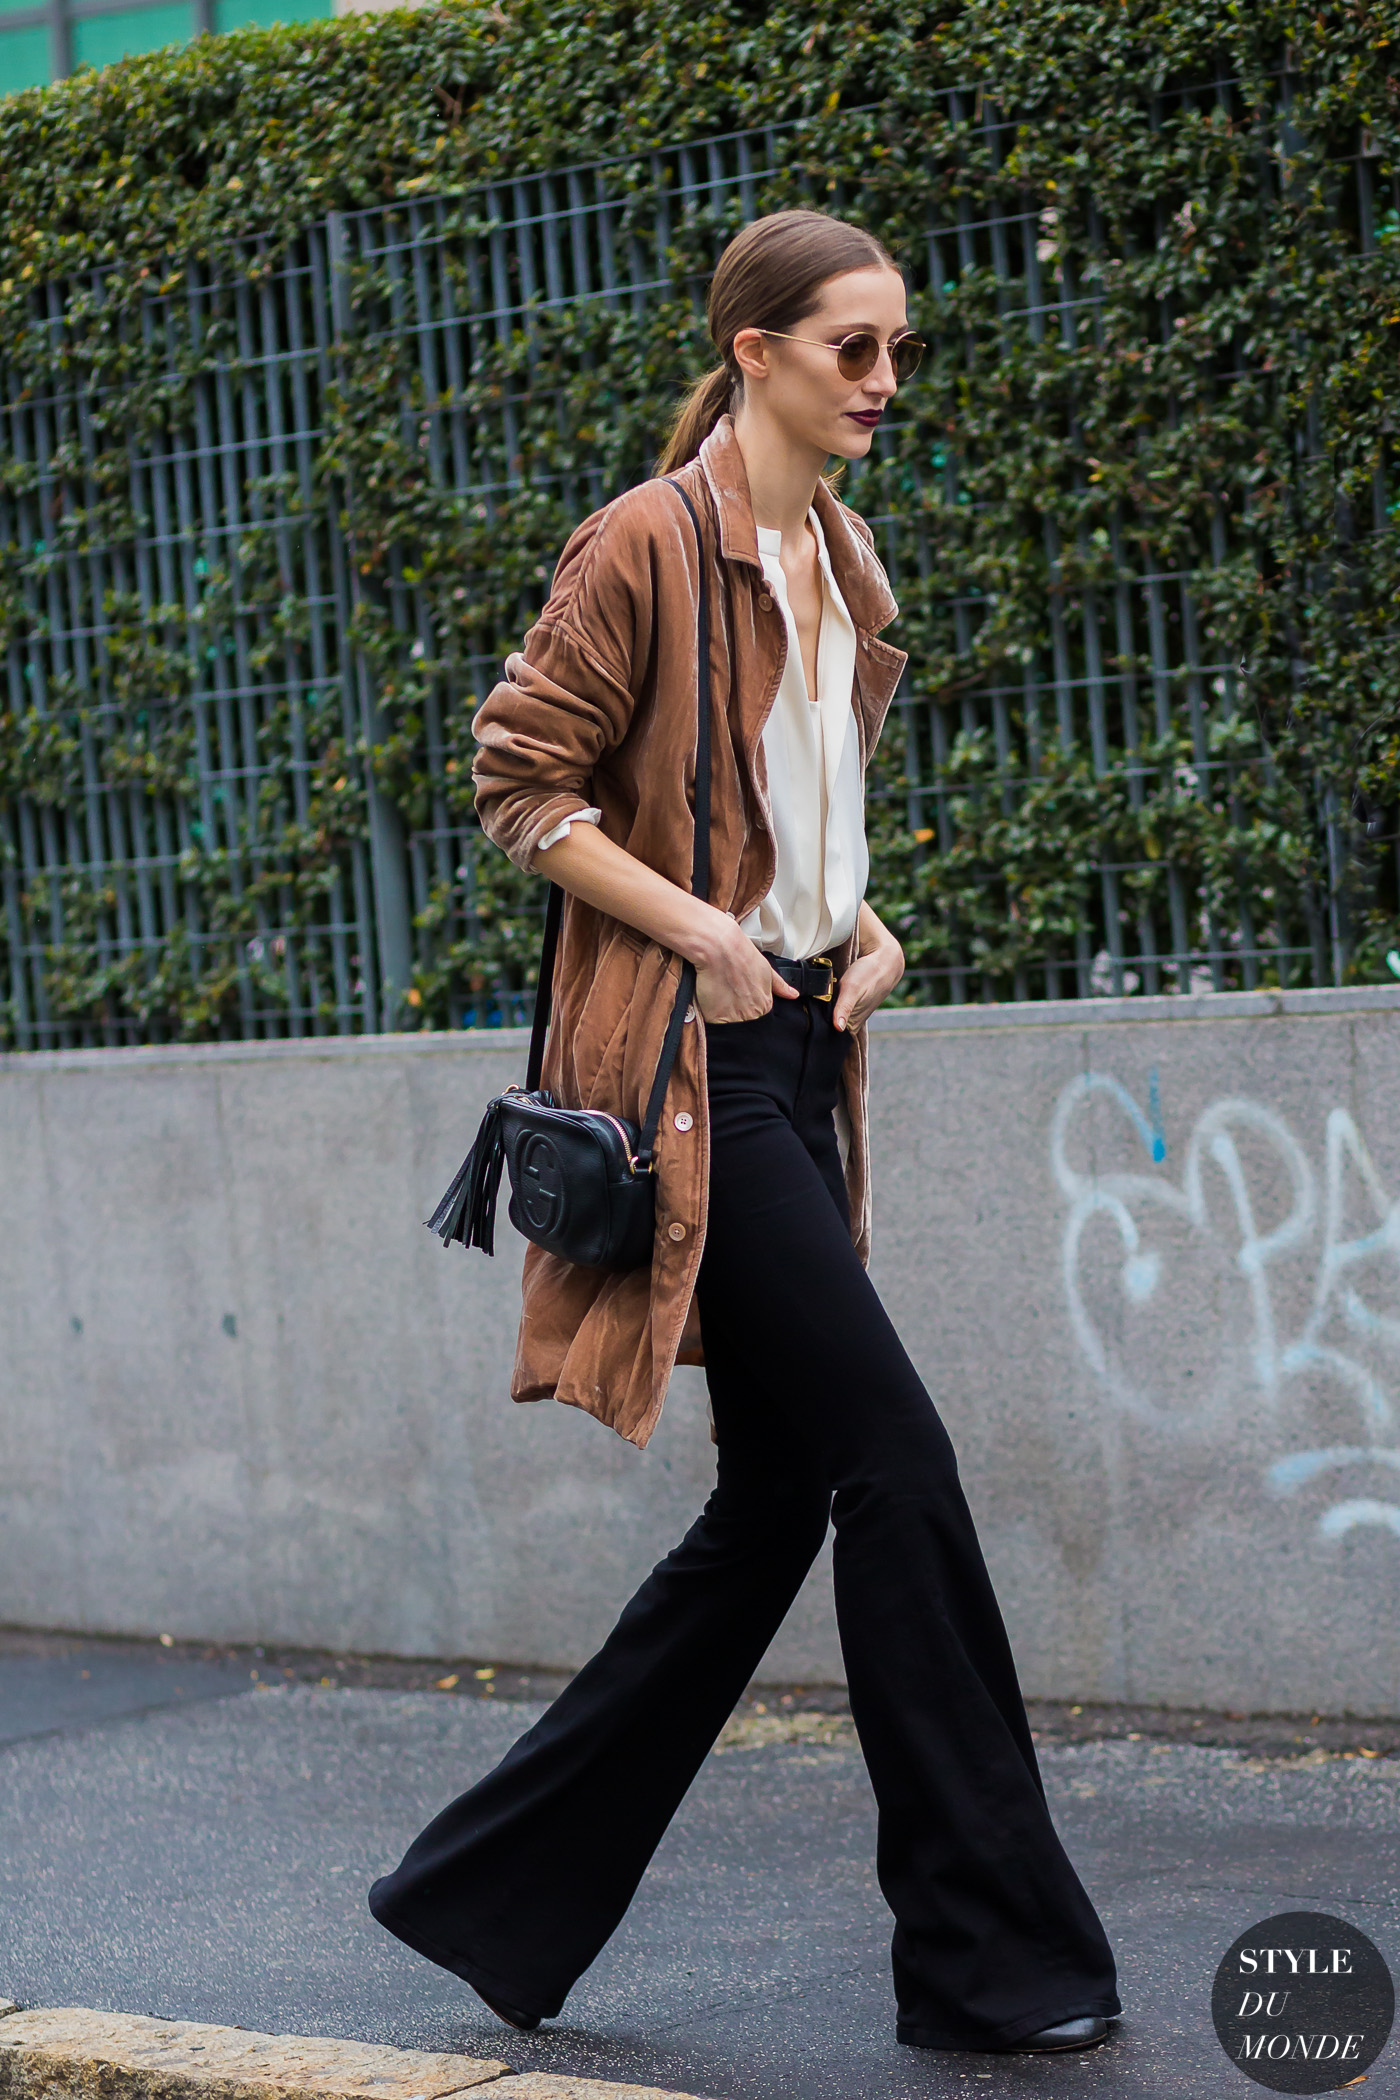 Alana Zimmer Street Style Street Fashion Streetsnaps by STYLEDUMONDE Street Style Fashion Photography